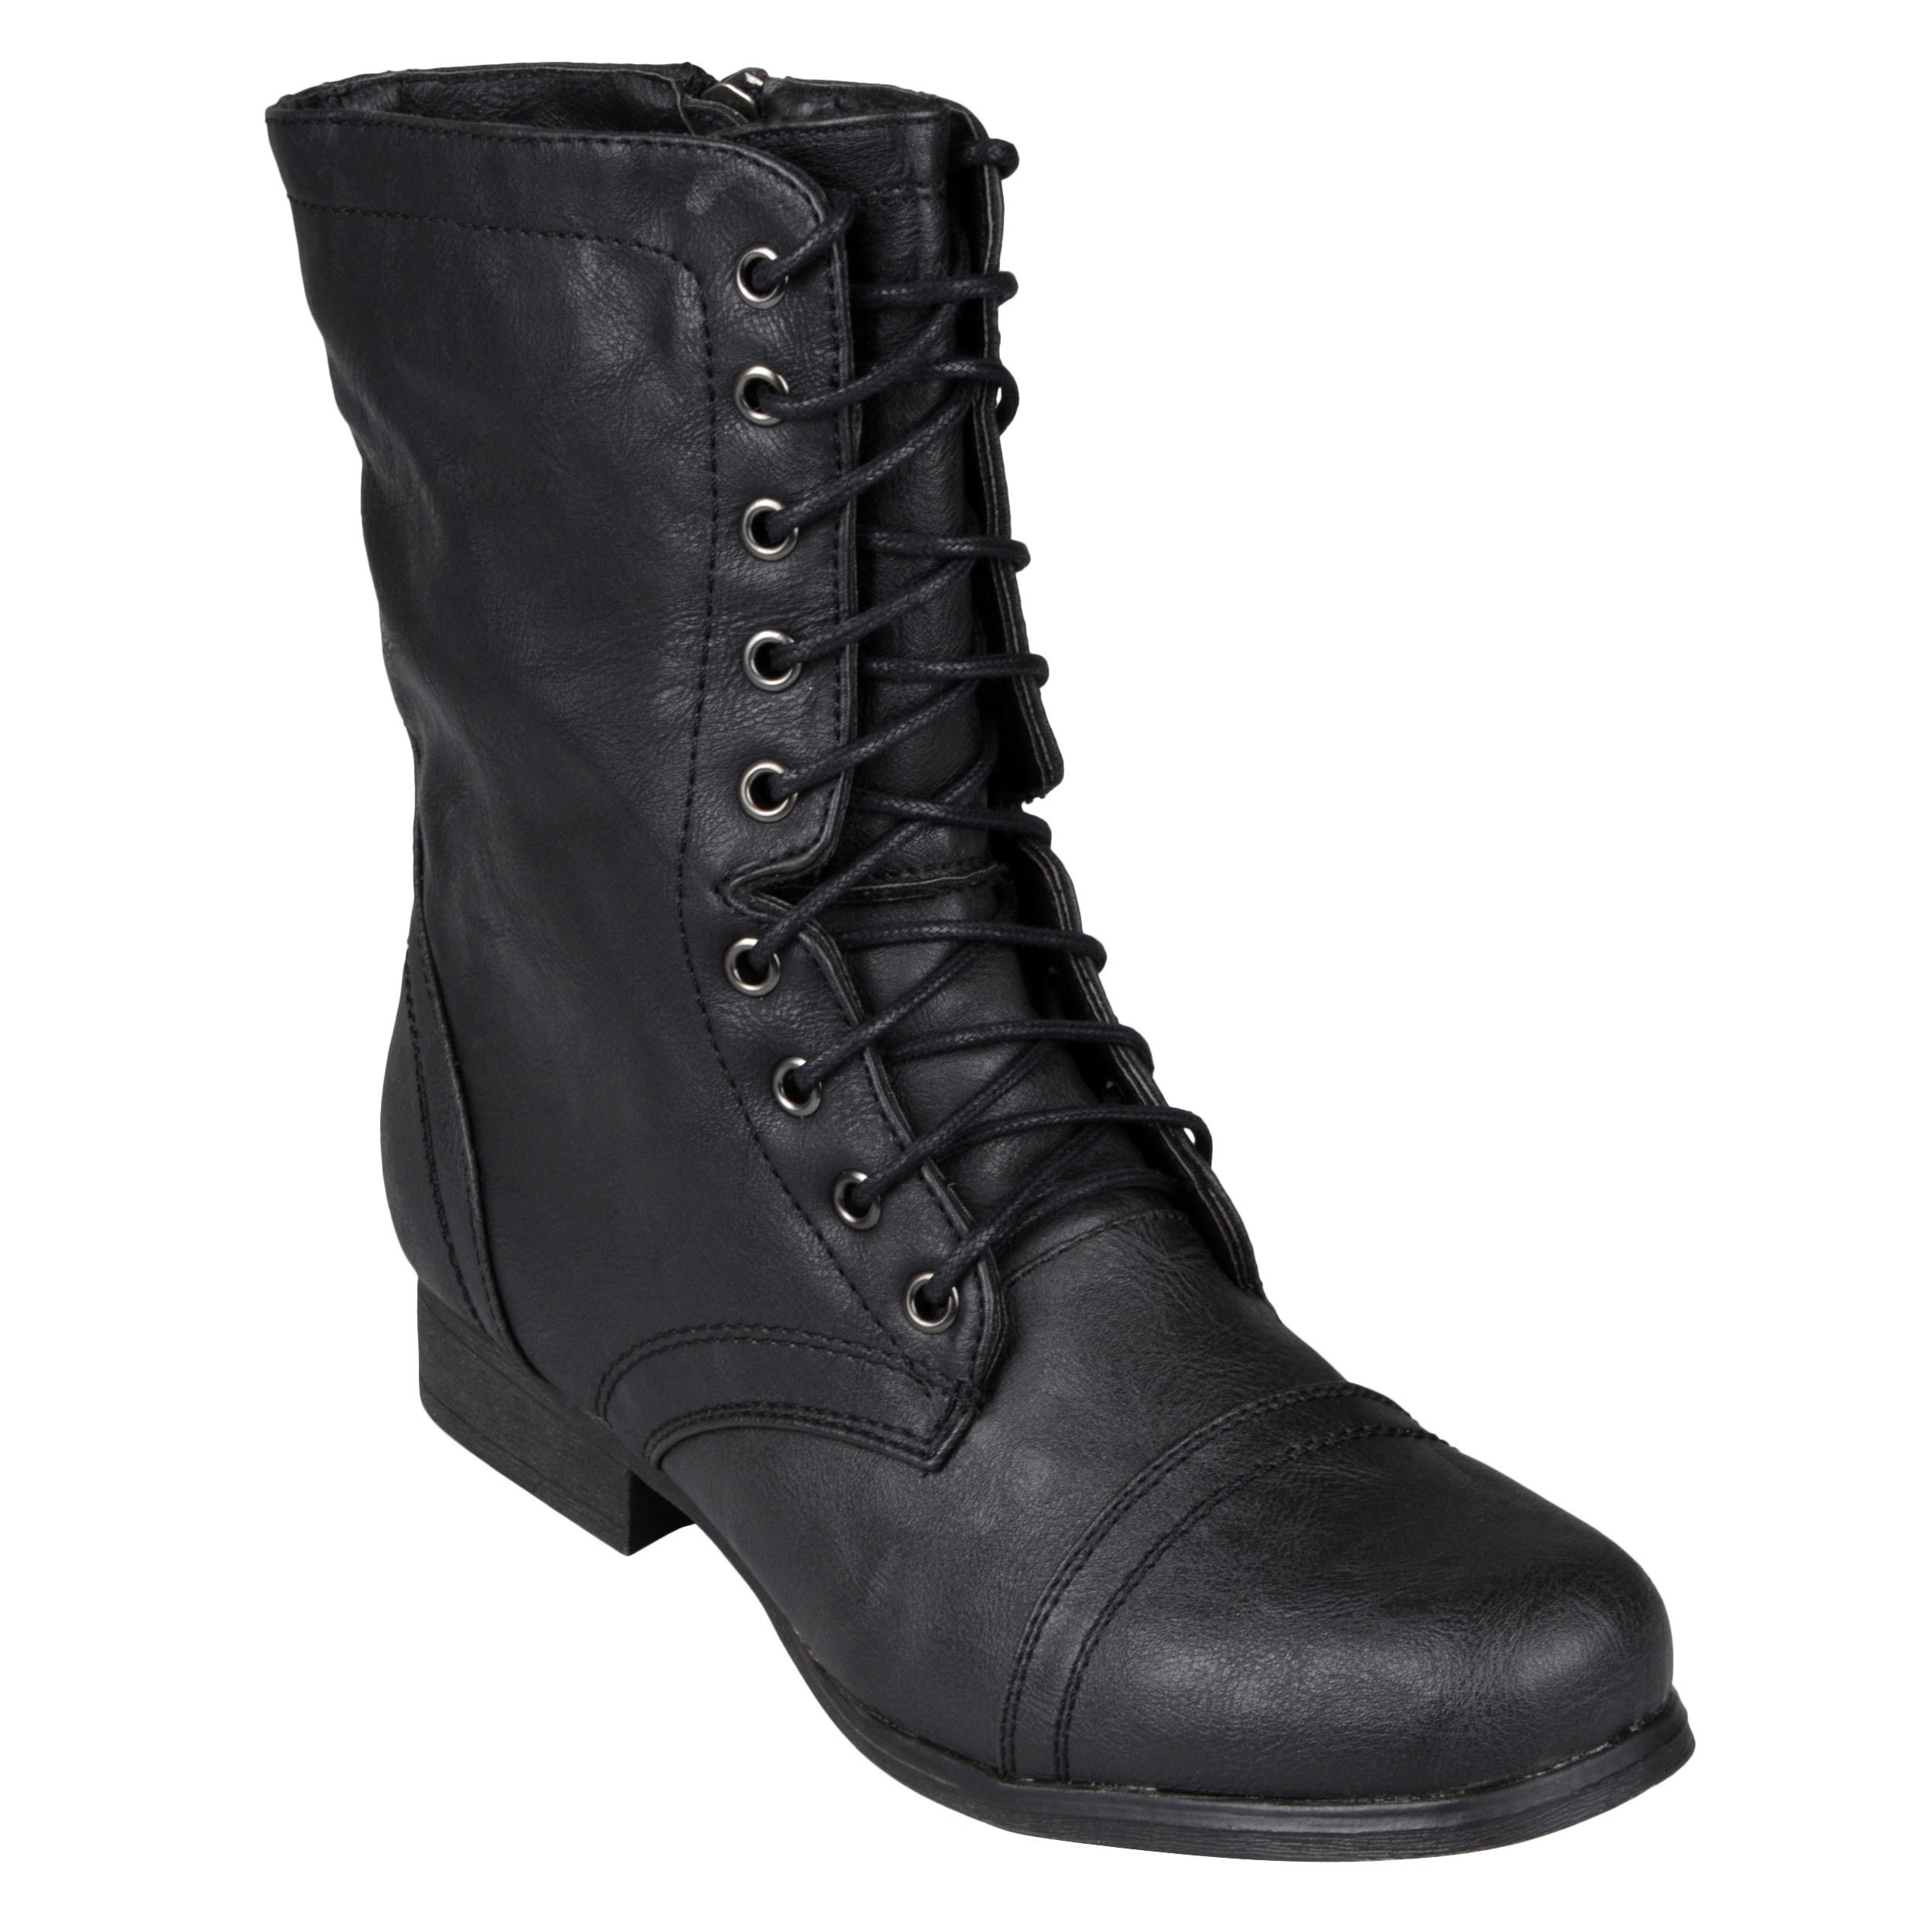 ca9ef3451a5 Madden Girl by Steve Madden Women's Lace-Up Ankle Combat Boots